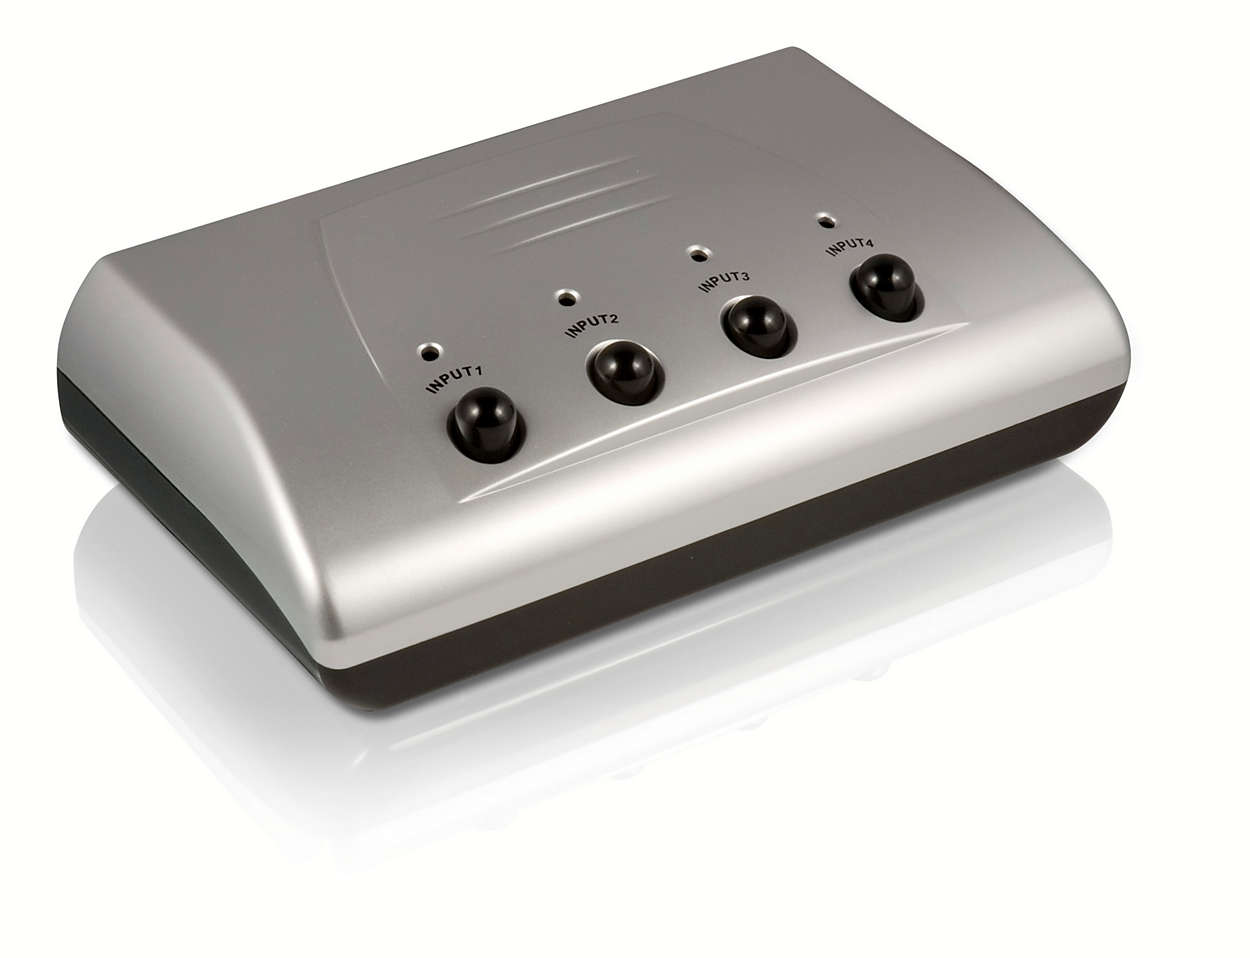 Connect up to 4 components